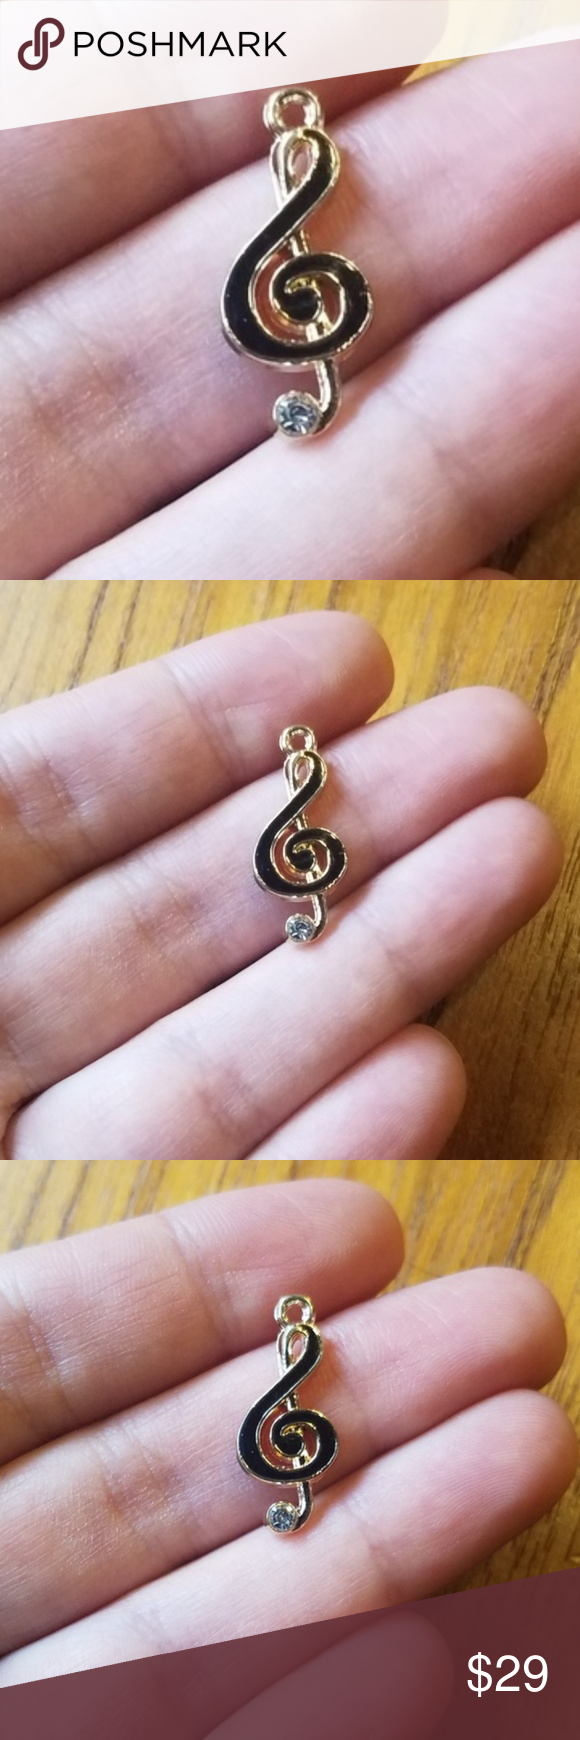 NWOT Treble Clef Musical Note Charm NWOT Treble Clef Music Charm. Adorable. Approx 2.1cm high w/bale by 1cm wide. Jewelry #trebleclef NWOT Treble Clef Musical Note Charm NWOT Treble Clef Music Charm. Adorable. Approx 2.1cm high w/bale by 1cm wide. Jewelry #trebleclef NWOT Treble Clef Musical Note Charm NWOT Treble Clef Music Charm. Adorable. Approx 2.1cm high w/bale by 1cm wide. Jewelry #trebleclef NWOT Treble Clef Musical Note Charm NWOT Treble Clef Music Charm. Adorable. Approx 2.1cm high w/ba #trebleclef